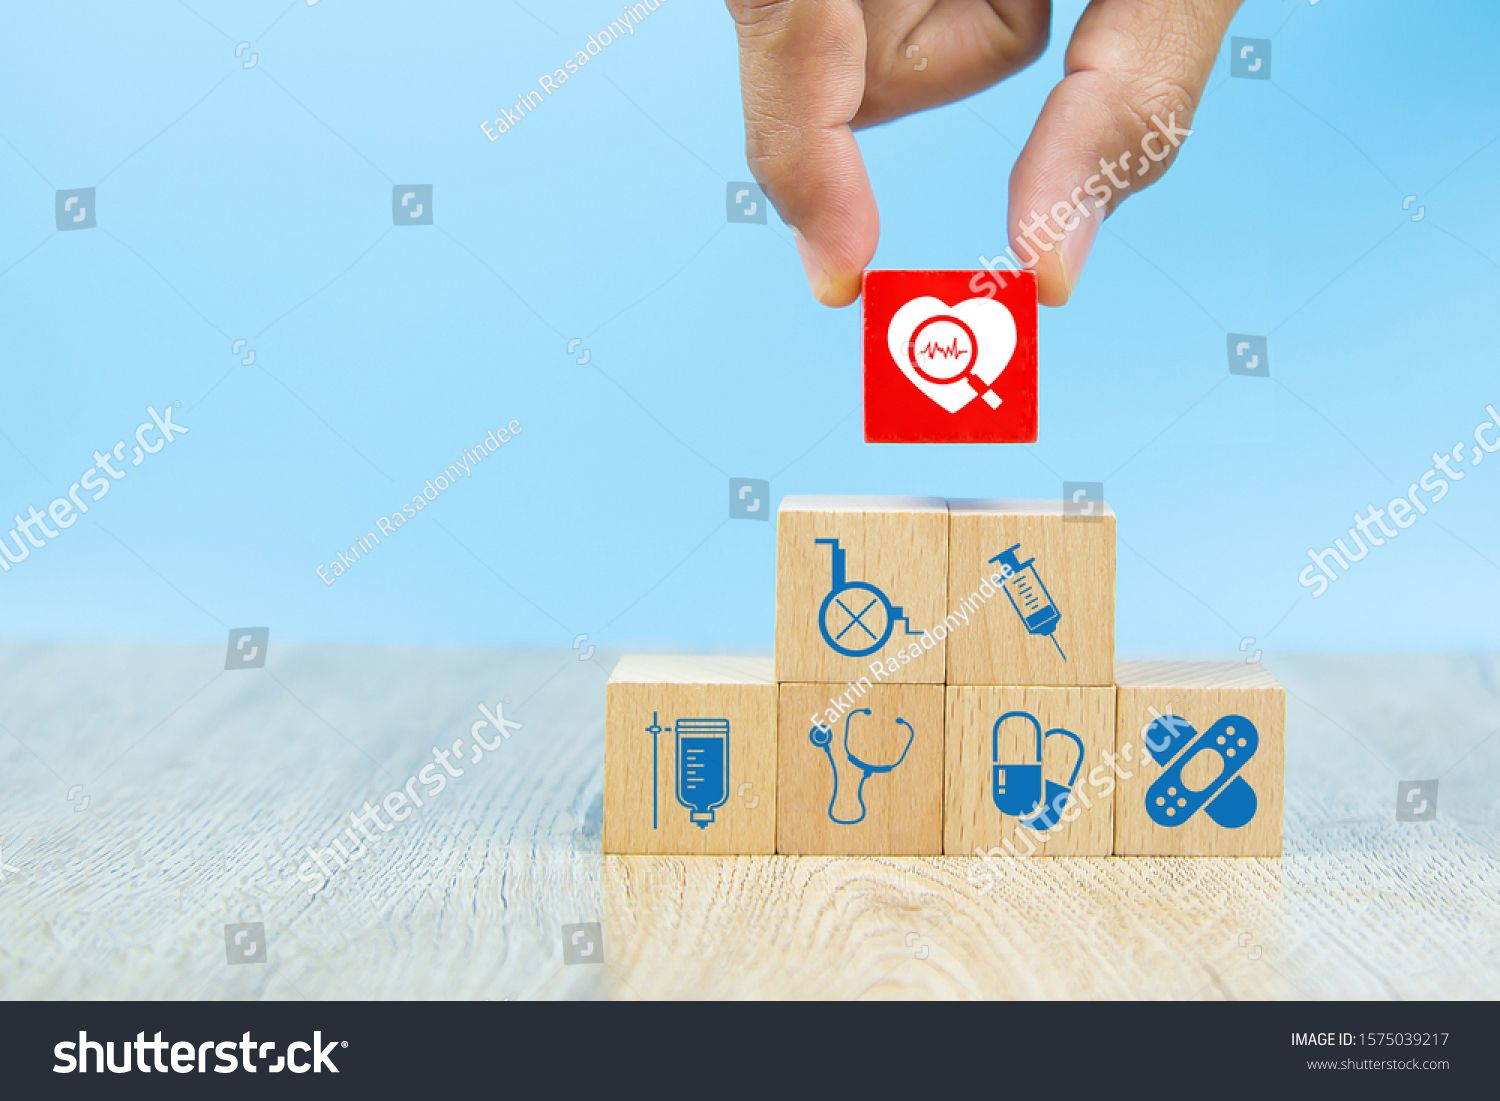 Health care and medical symbols on wooden blocks for health insurance concepts